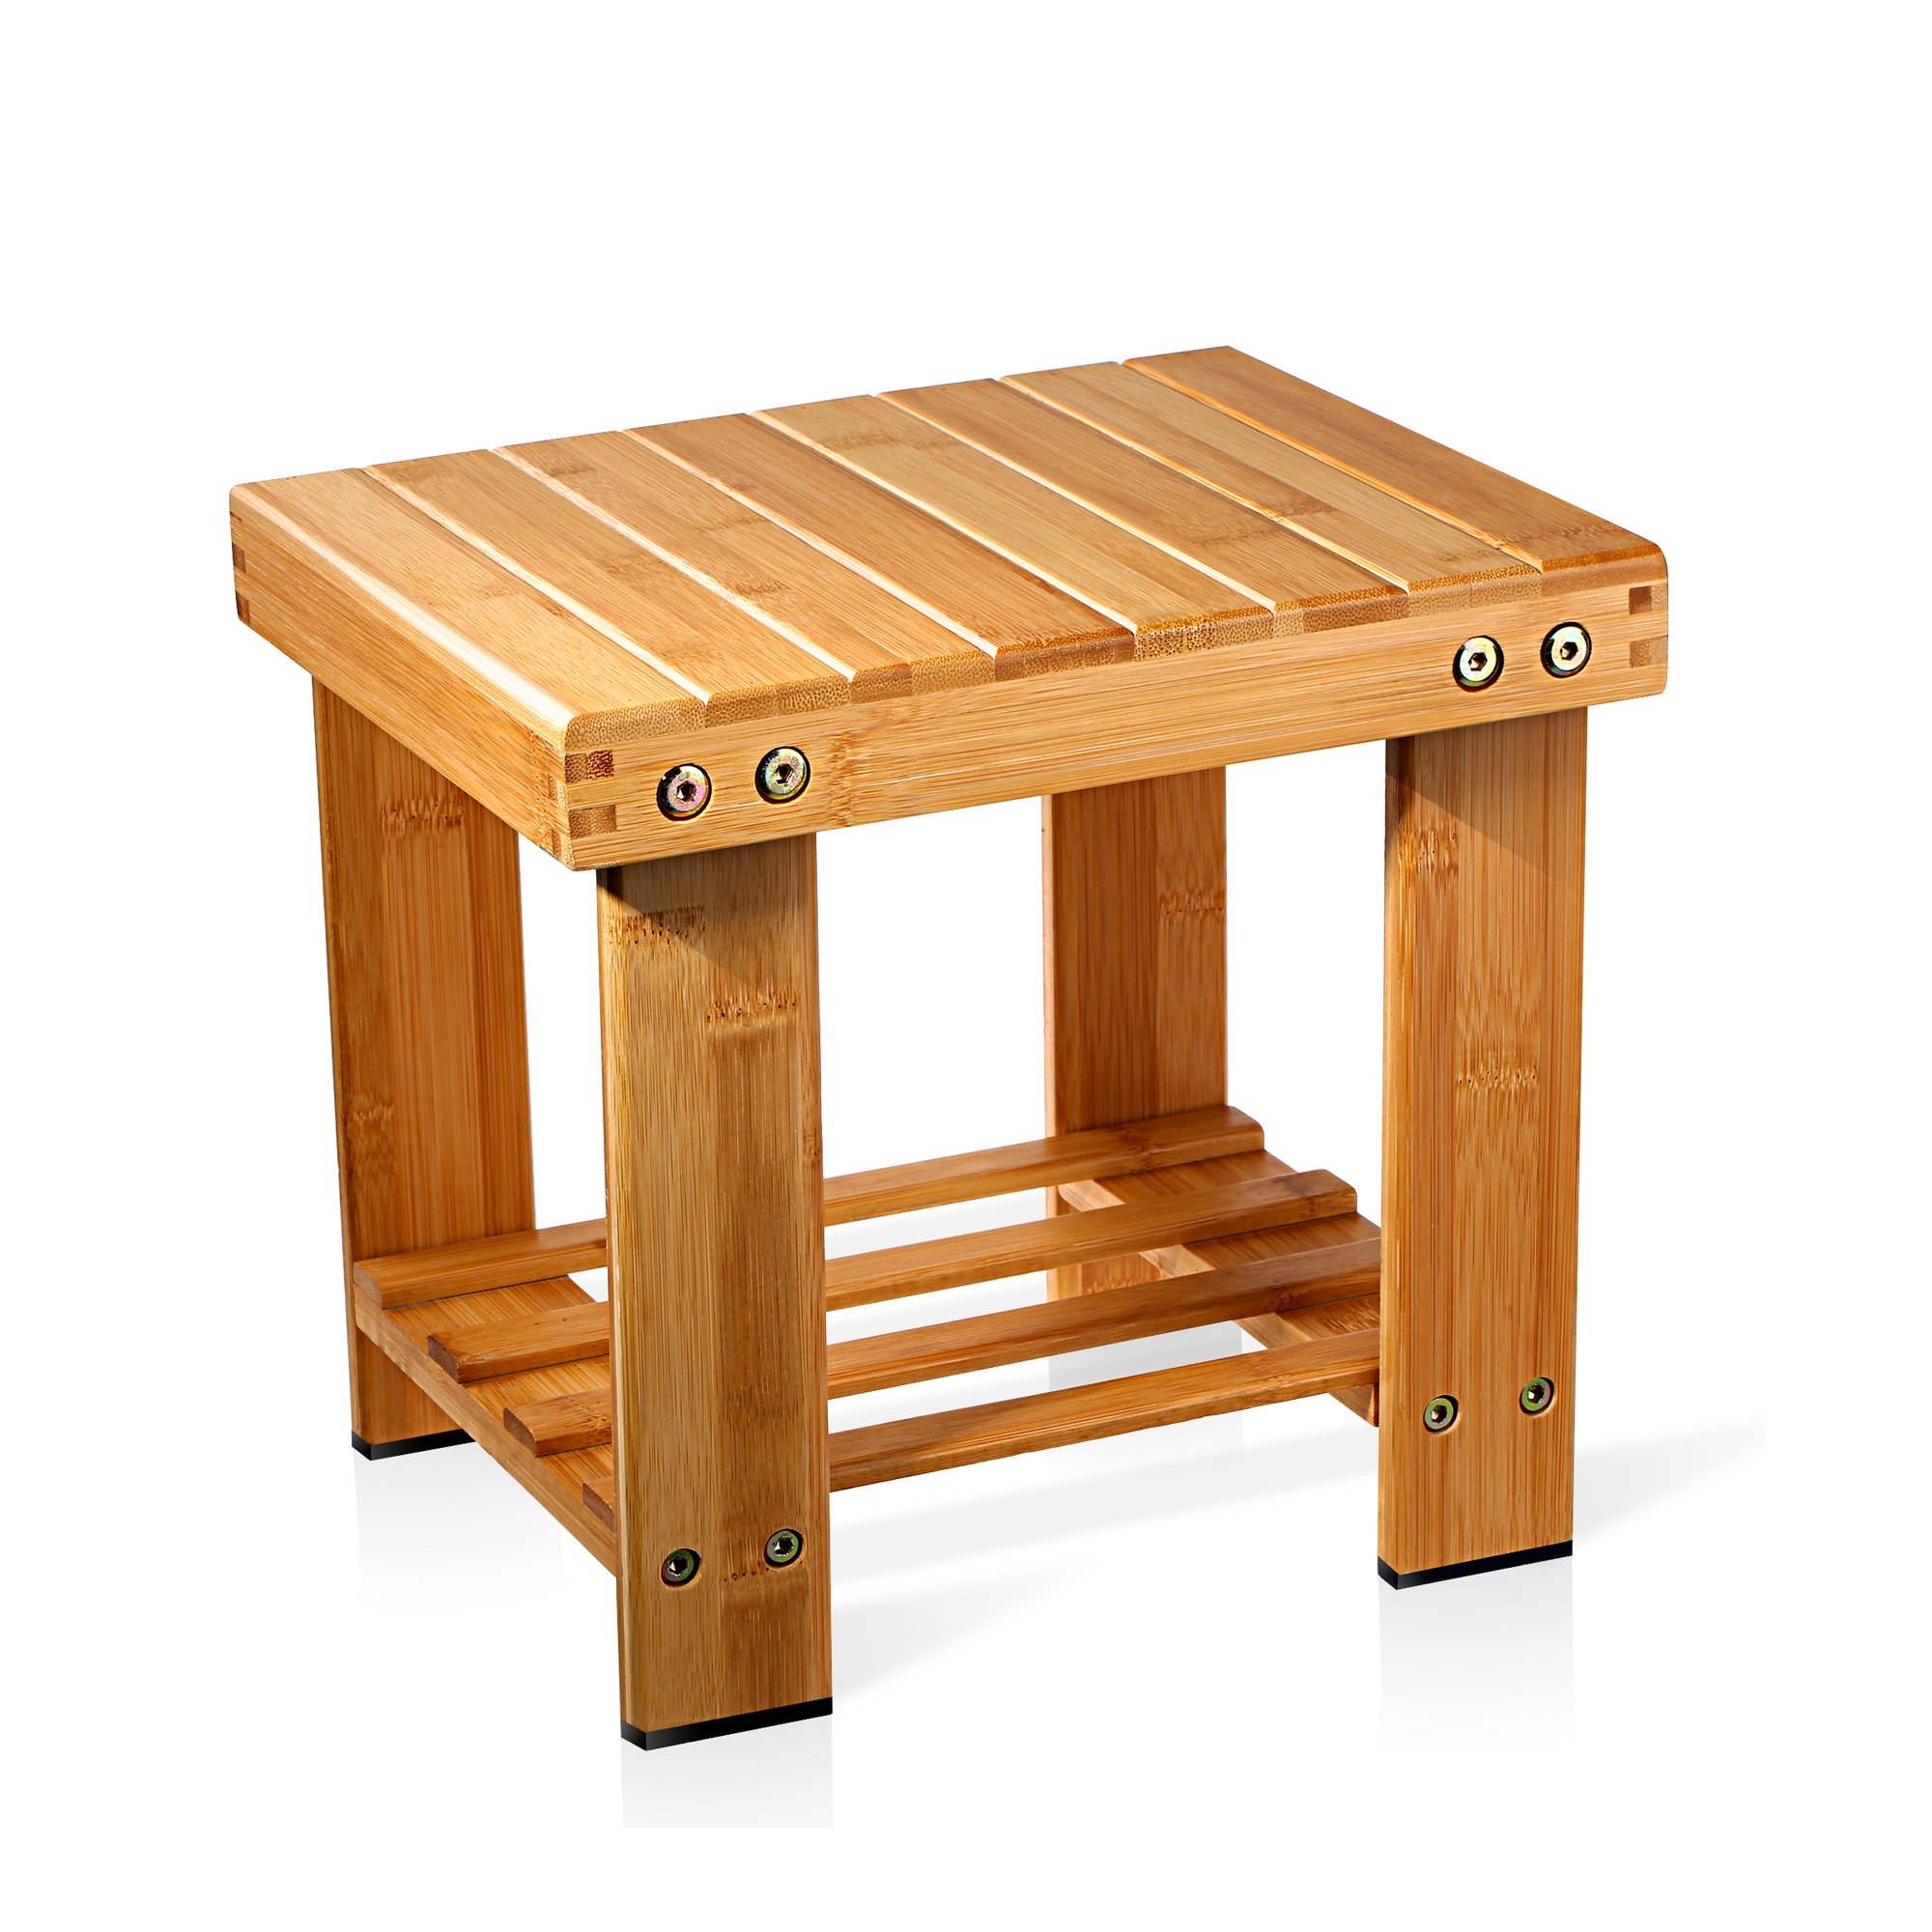 Bamboo Shower Small Seat Bench Bathroom Spa Bath Organizer Stool ...